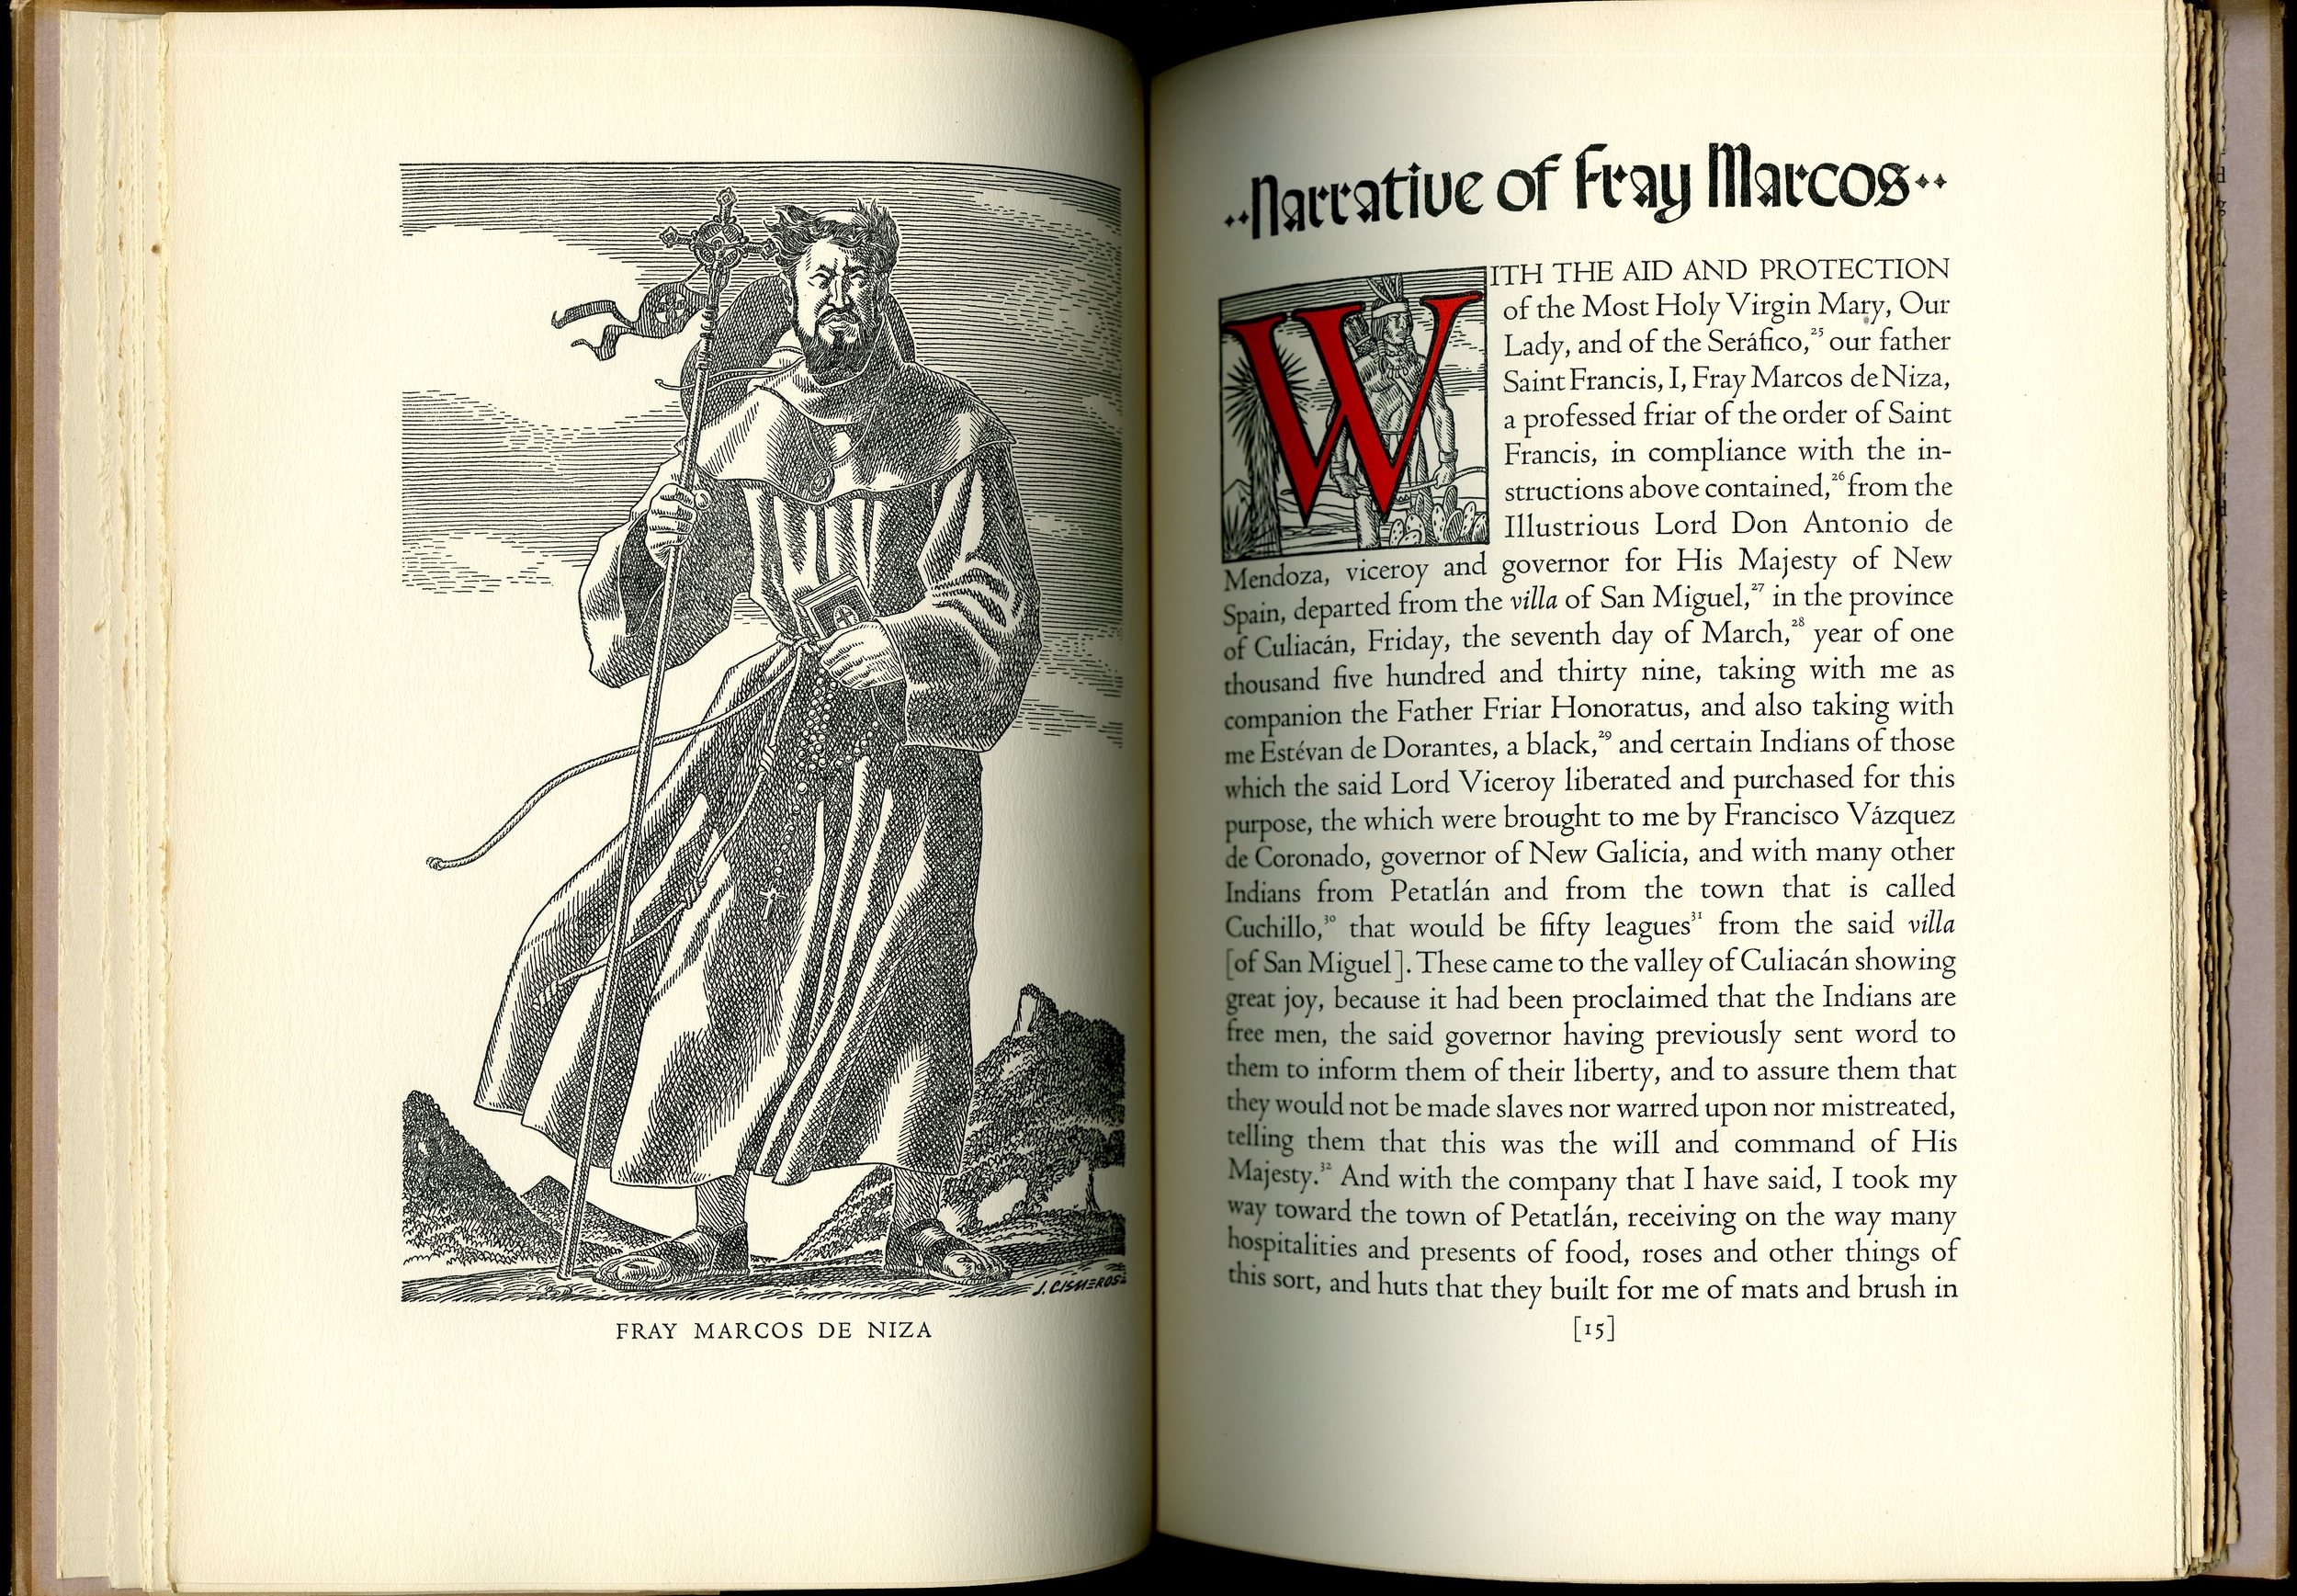 """Page spread from """"The journey of Fray Marcos de Niza (1949), translated and edited by Cleve Hallenbeck. UTSA Libraries Special Collections."""